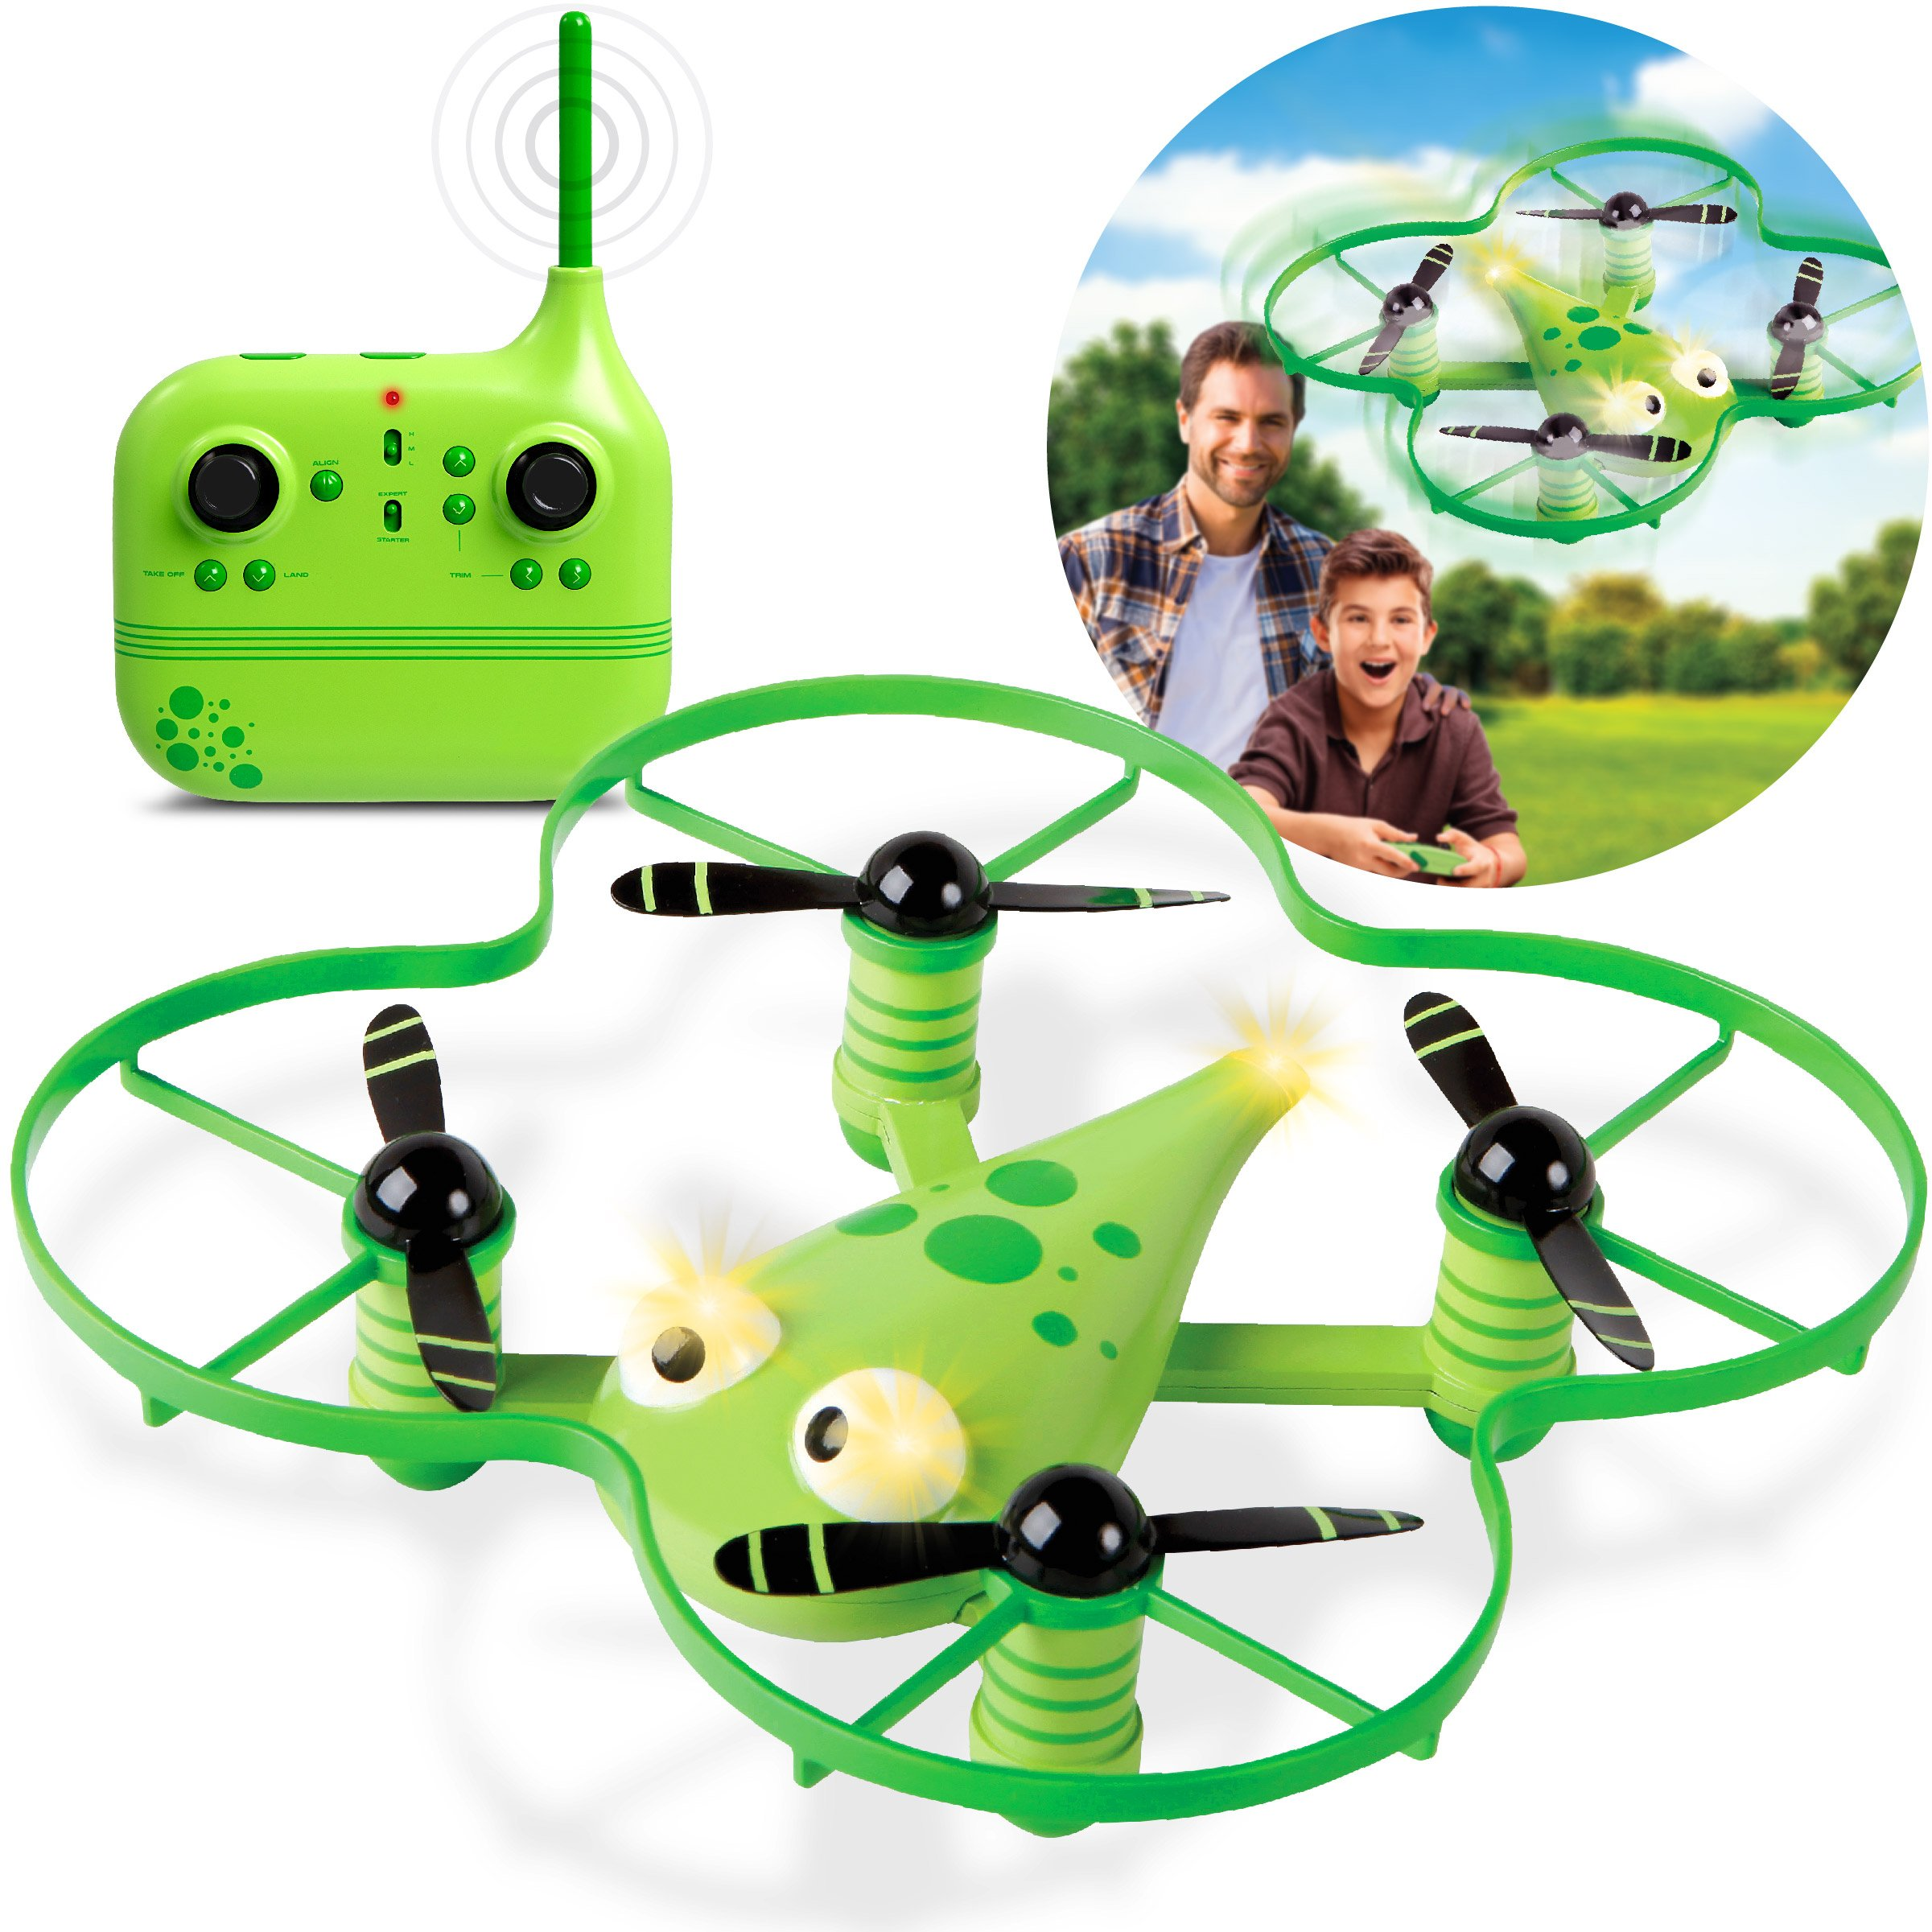 DISCOVERY KIDS RC Mini Quadcopter Stunt Drone Zip 360 Degrees, First Training Drone for Children, Adults, and Beginners, LED Light Eyes & Tail, Beginning & Expert Modes, One Key Return & 3D Flip